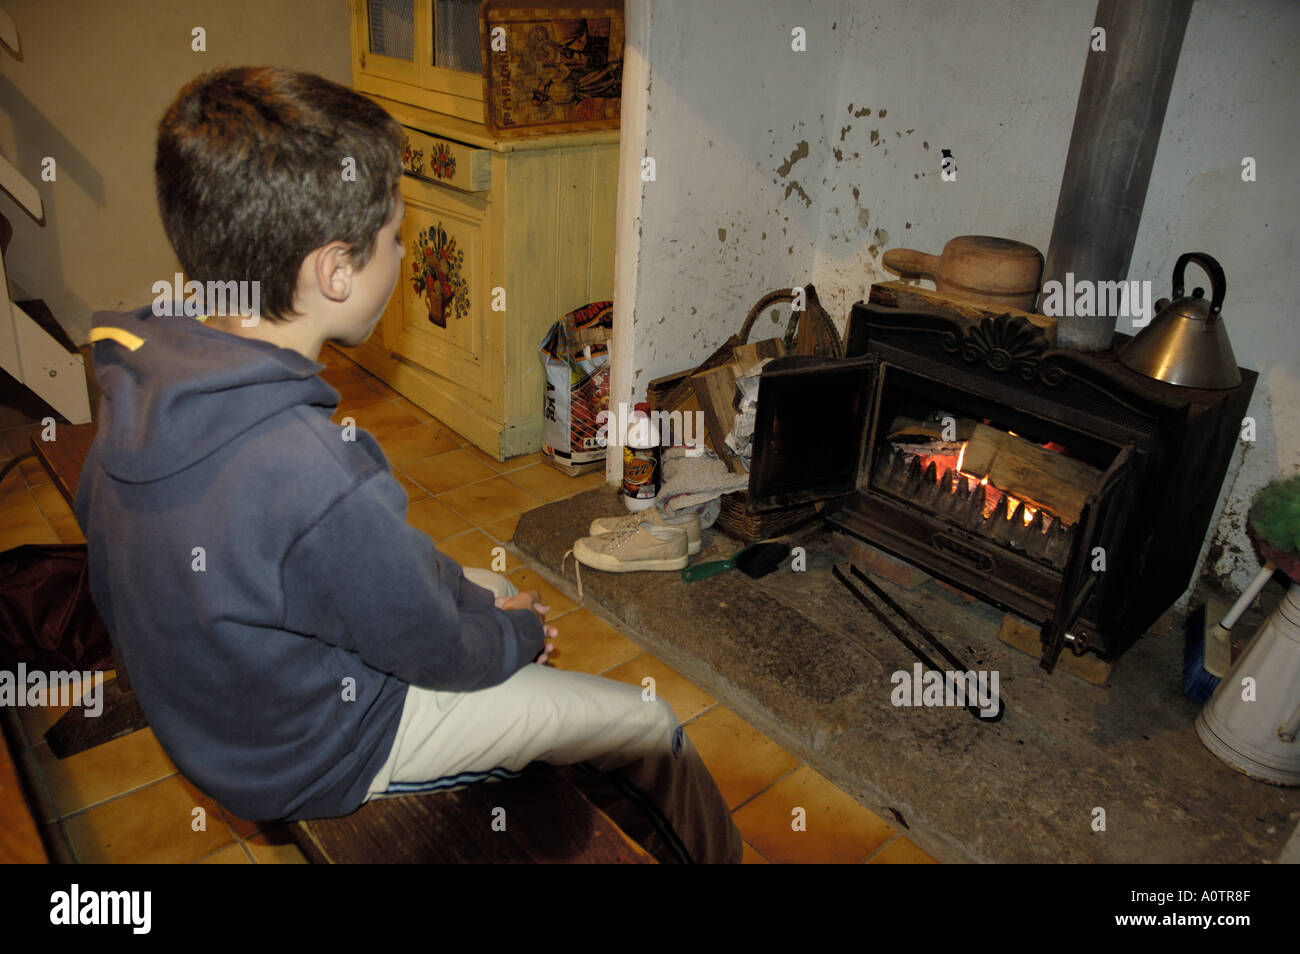 Ten years old boy looking at the fire - Stock Image